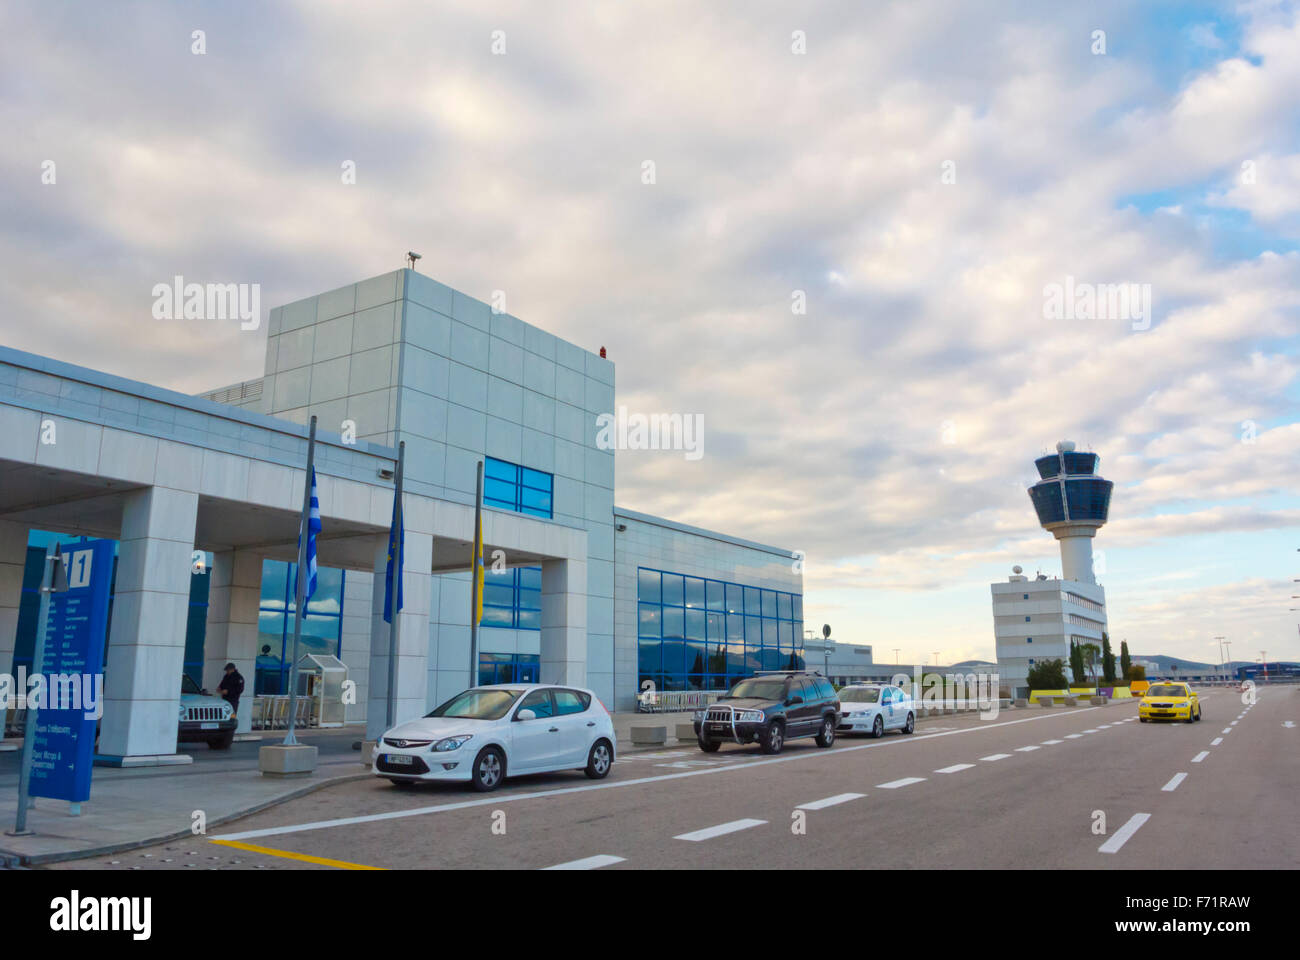 Terminal and air traffic control tower, Athens international airport, Eleftherios Venizelos, Athens, Greece - Stock Image